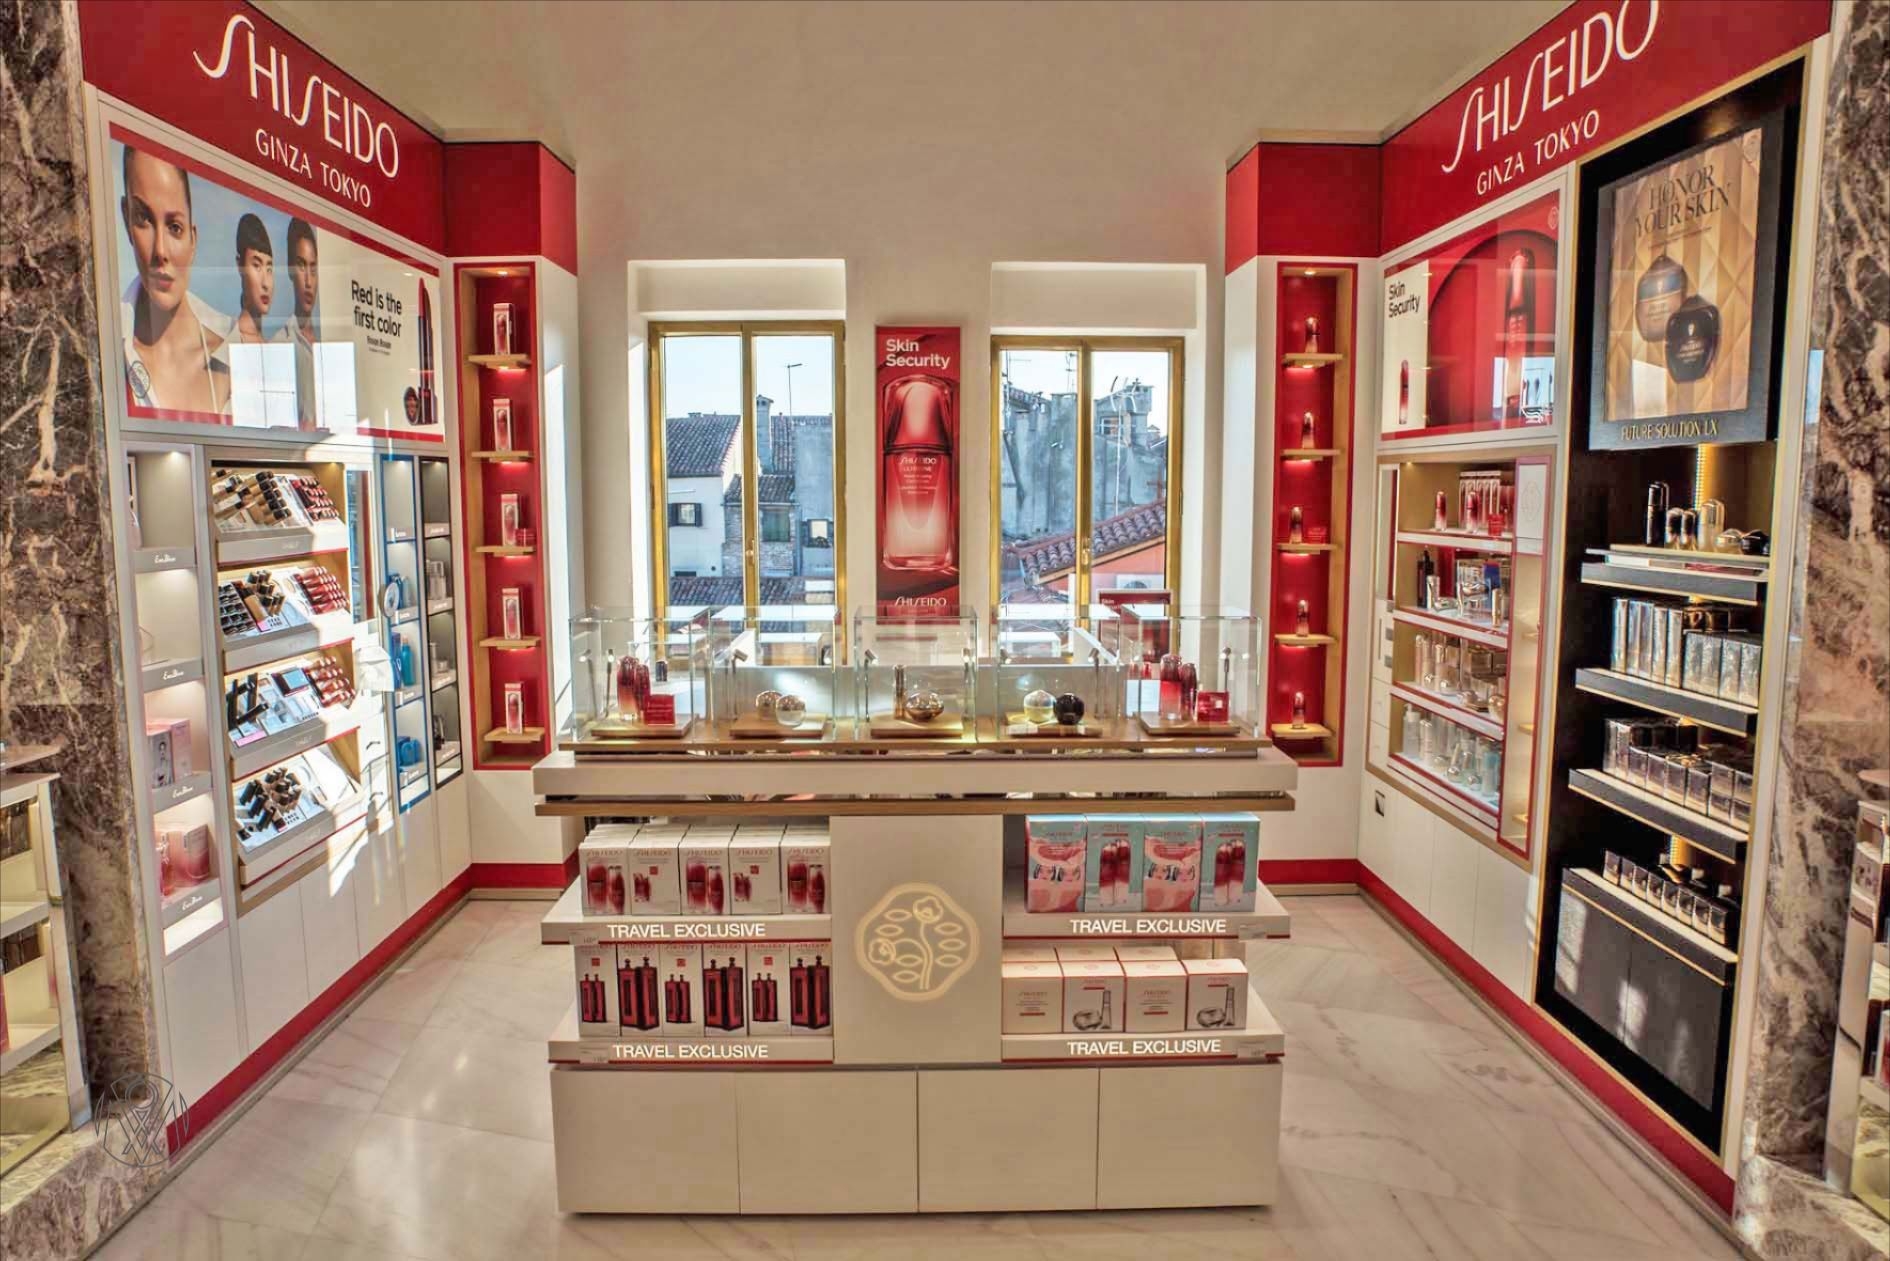 LAB:OM agency x Shiseido. We have designed a shop in shop for @shiseido at the elegant building @tfondaco in Venice, Italy 🇮🇹. Thank you shiseido for our wonderful collaboration! 🚣‍♂️ 🚣‍♂️ 🚣‍♂️ 🚣‍♂️ 🚣‍♂️  #labomagency #design #shopinshop #shiseido #tfondacodeitedeschivenezia #venezia🇮🇹 #interiordesign #elegantstyle #history #beauty #cosmetic #retaildesign #retaildesignagency #spatialdesign #labomhongkong #labomhchiminh #labomparis #aroundtheworld